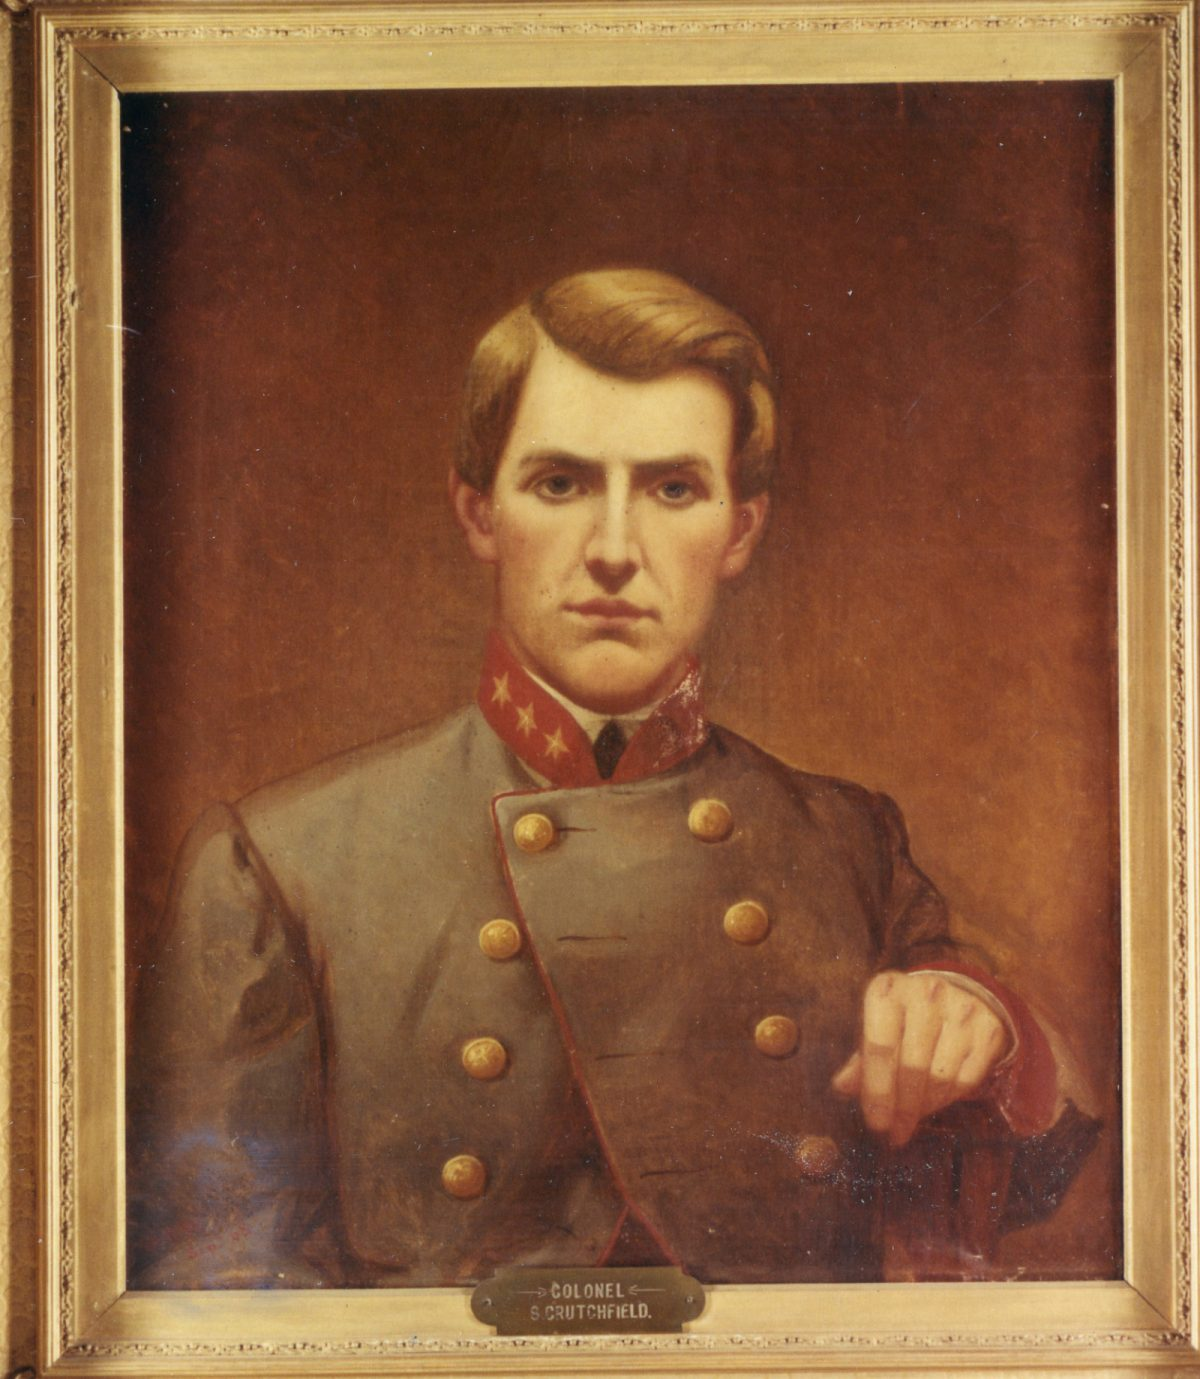 Colonel Stapleton Crutchfield